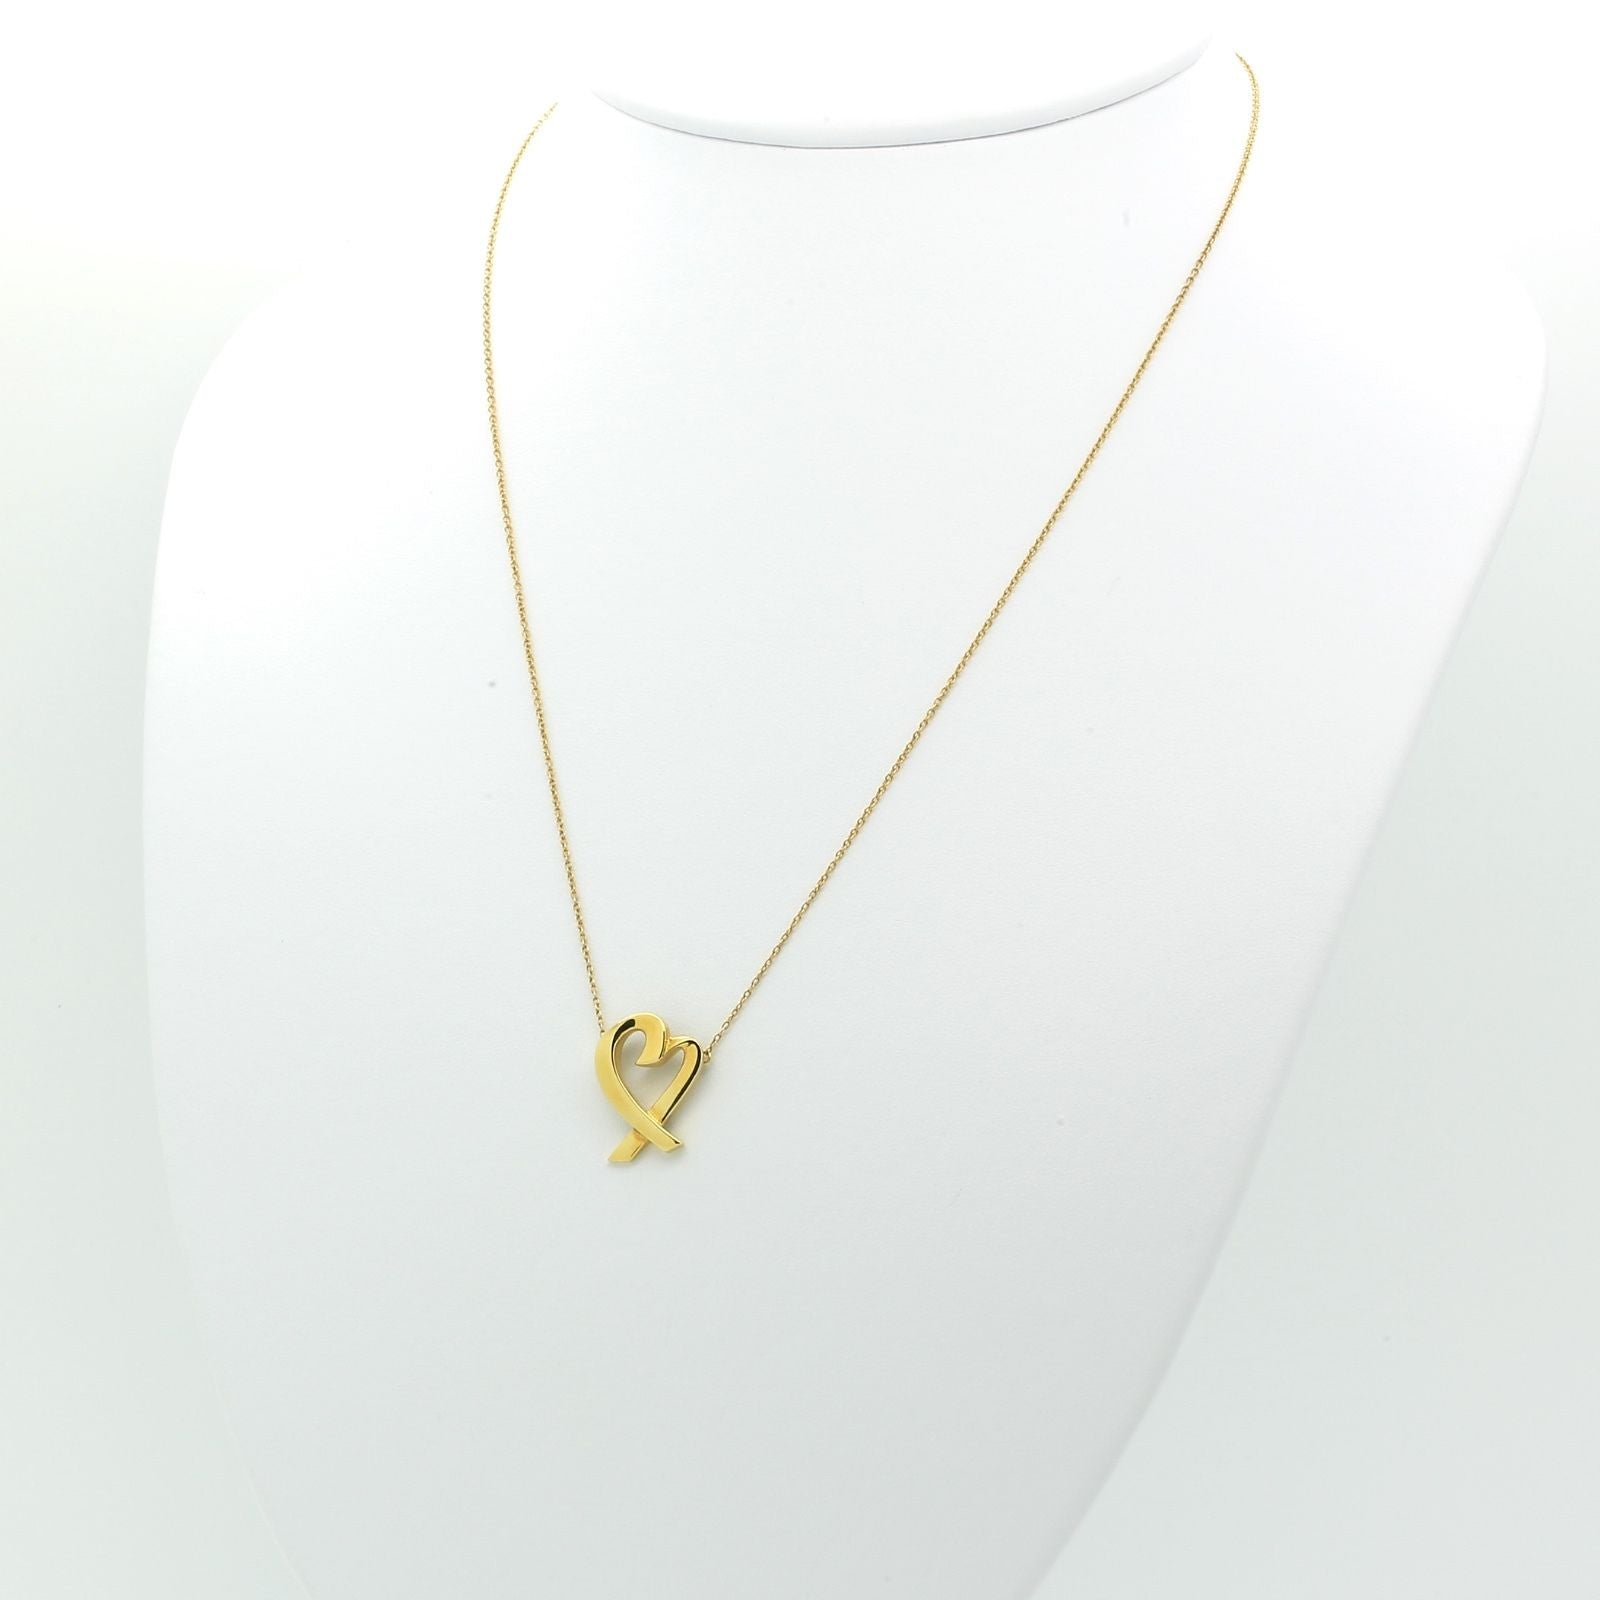 Tiffany co paloma picasso loving heart necklace pendant in 18k tiffany co paloma picasso loving heart necklace pendant in 18k yellow gold aloadofball Image collections